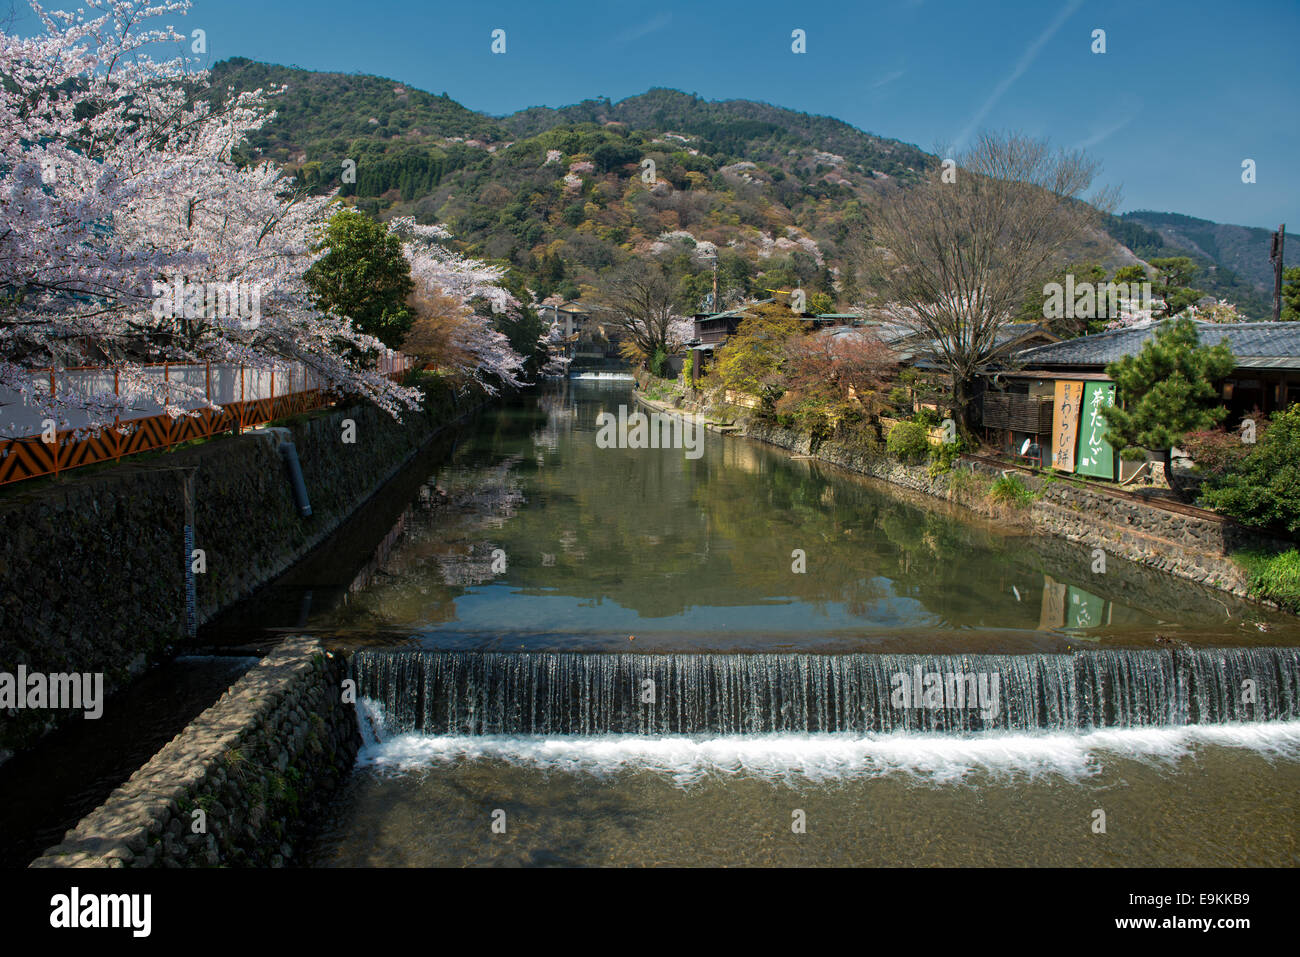 Spring in Japan - Arashiyama and Hozu river during cherry blossom in April. - Stock Image